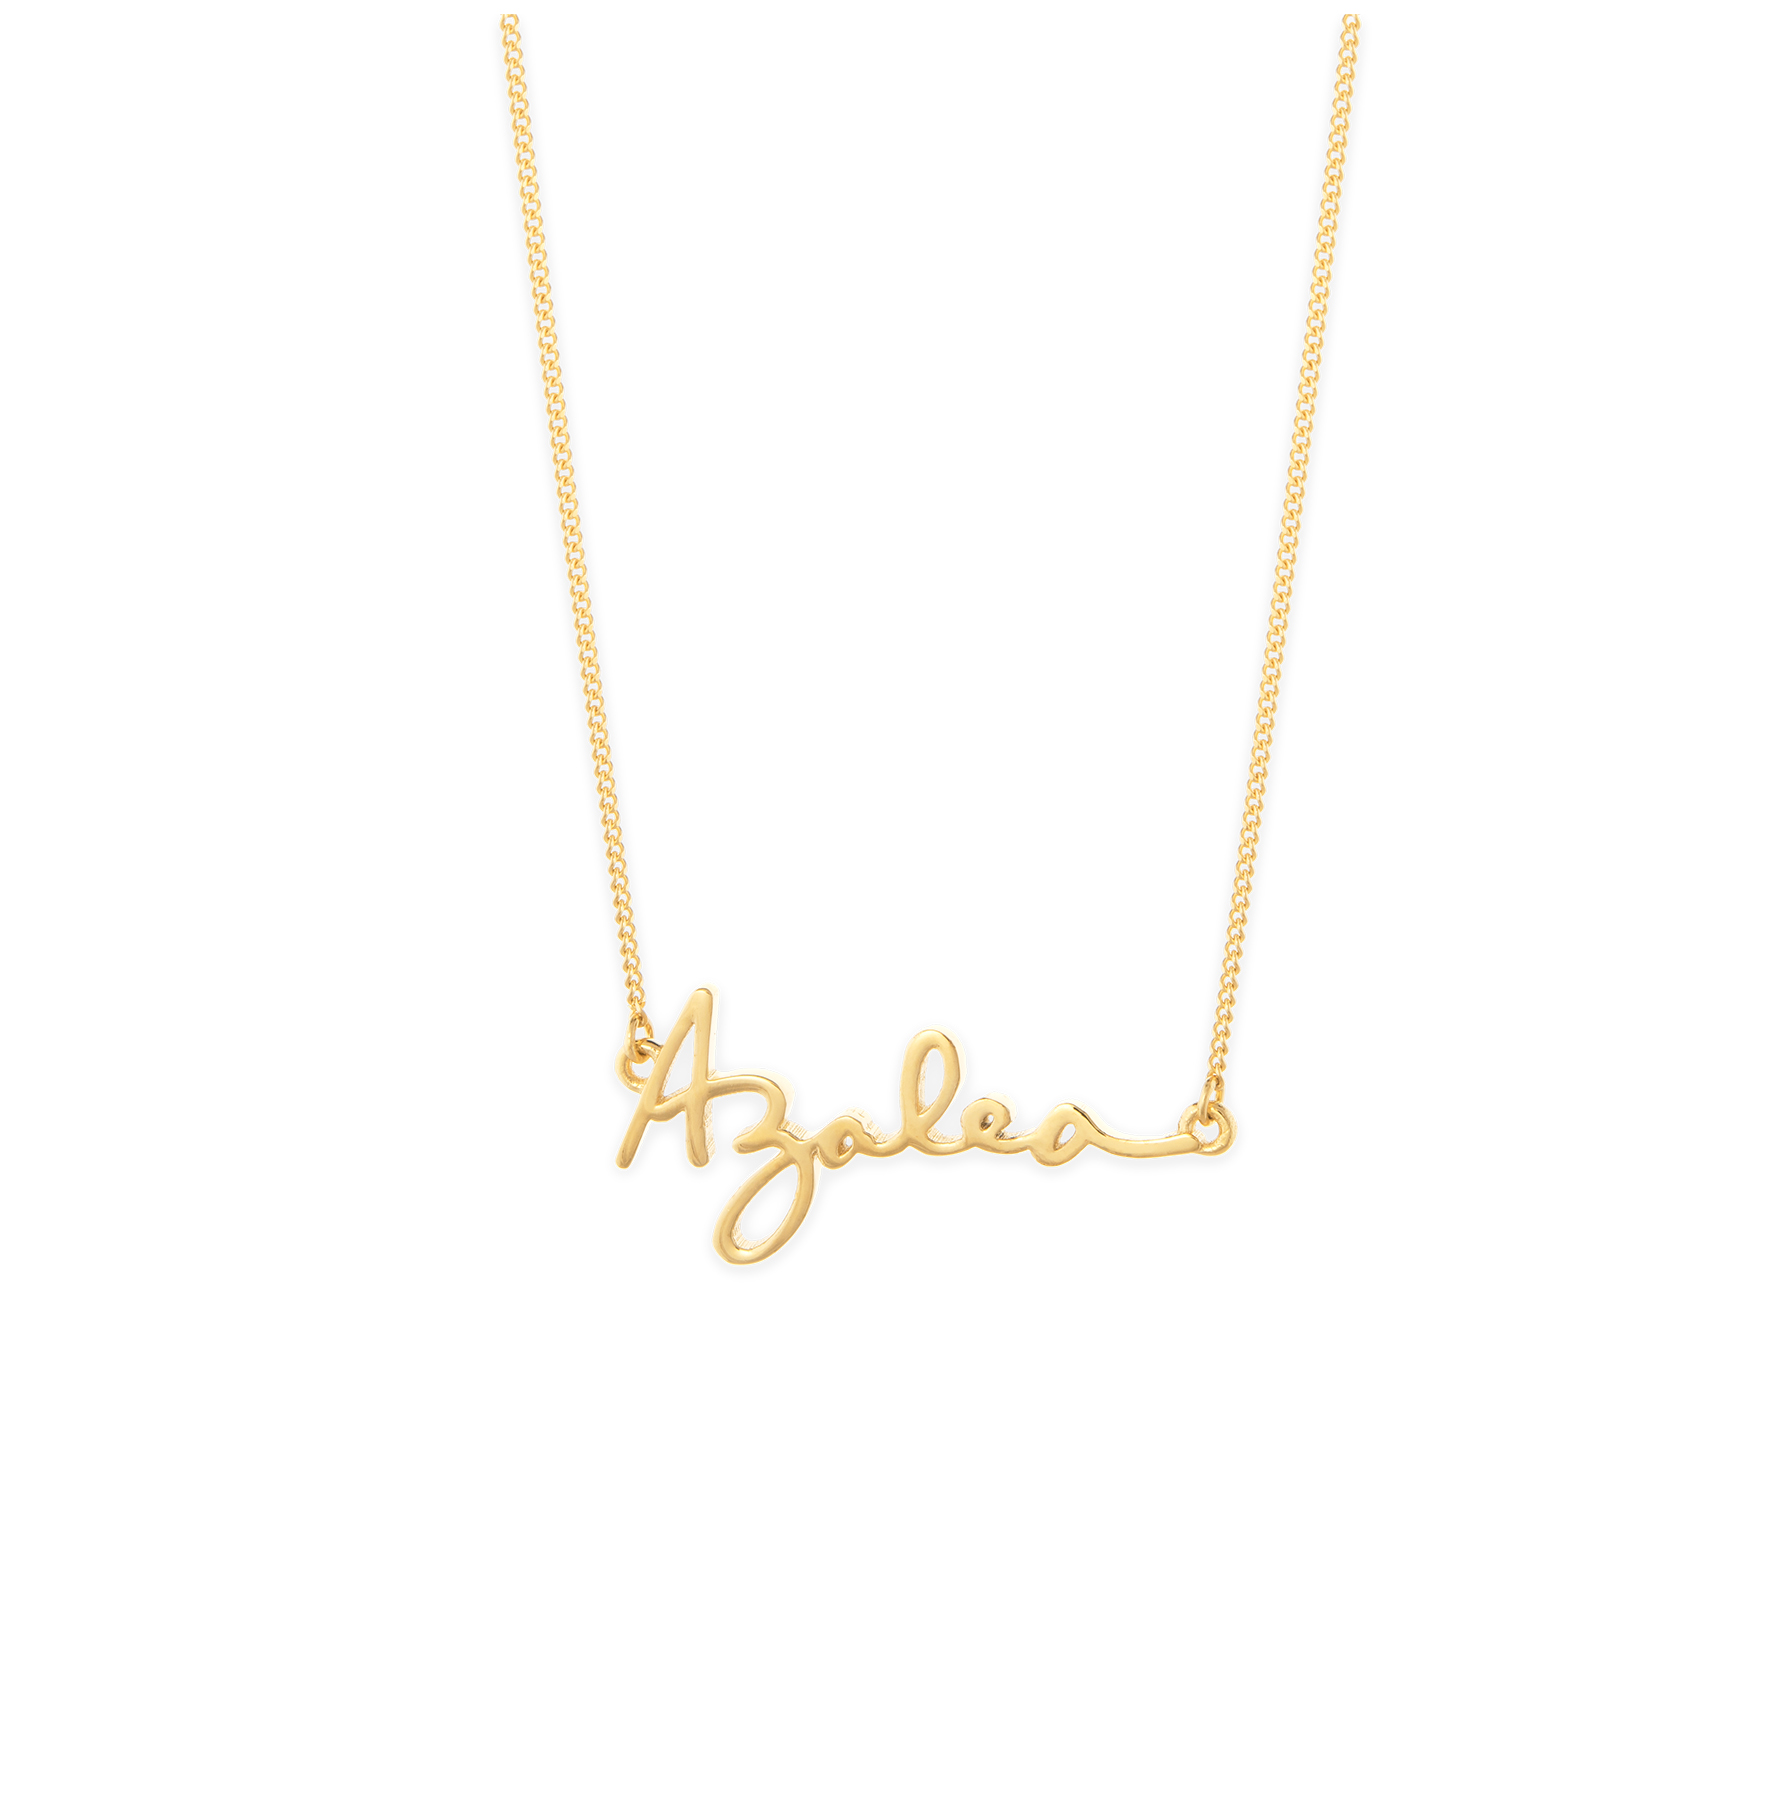 Capsul Jewelry Customizable Signature Necklace